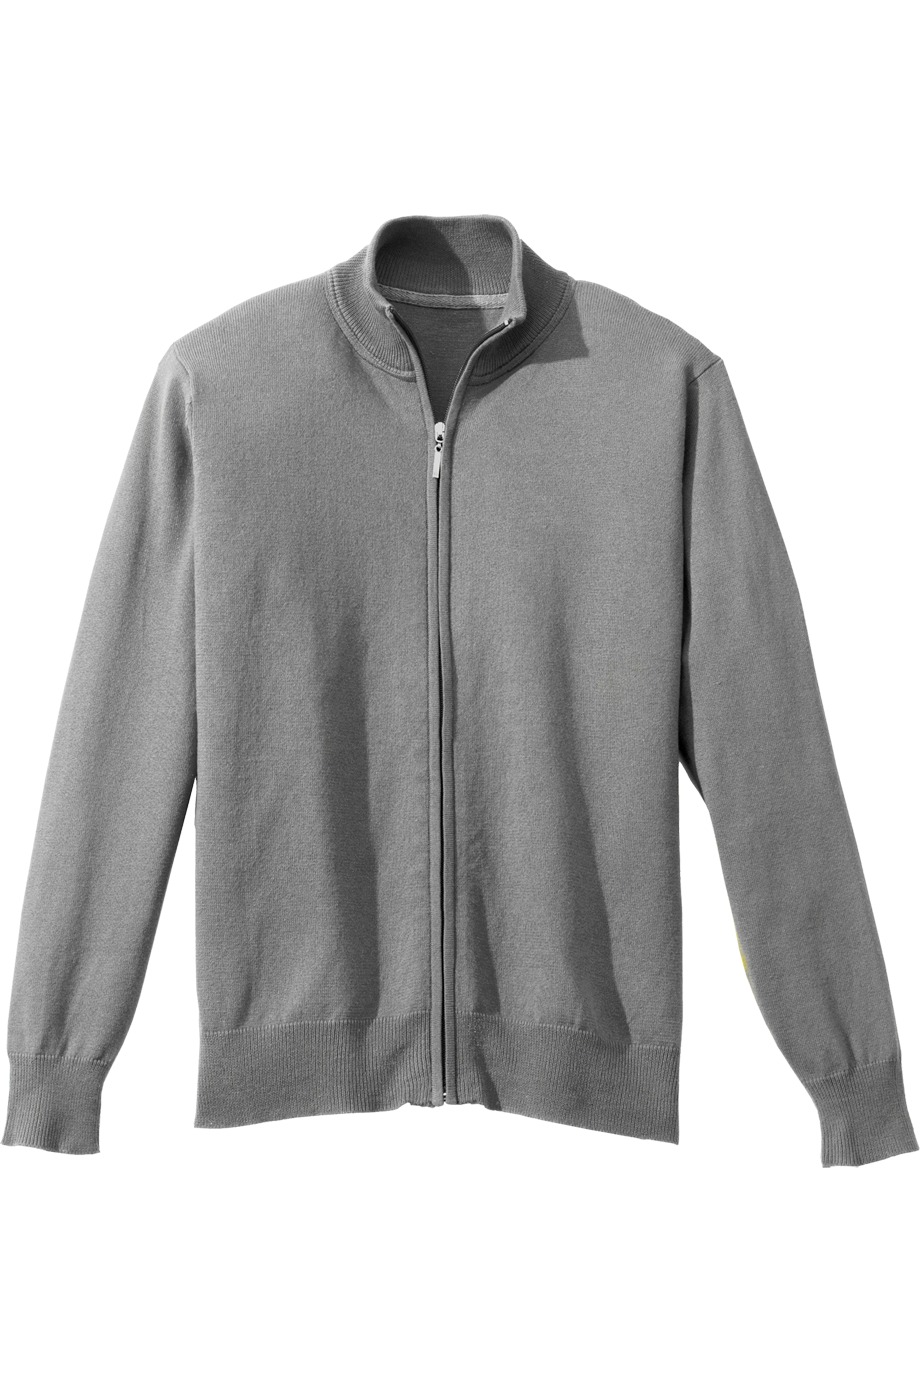 Edwards Garment 064 - Women's Full Zip Cardigan